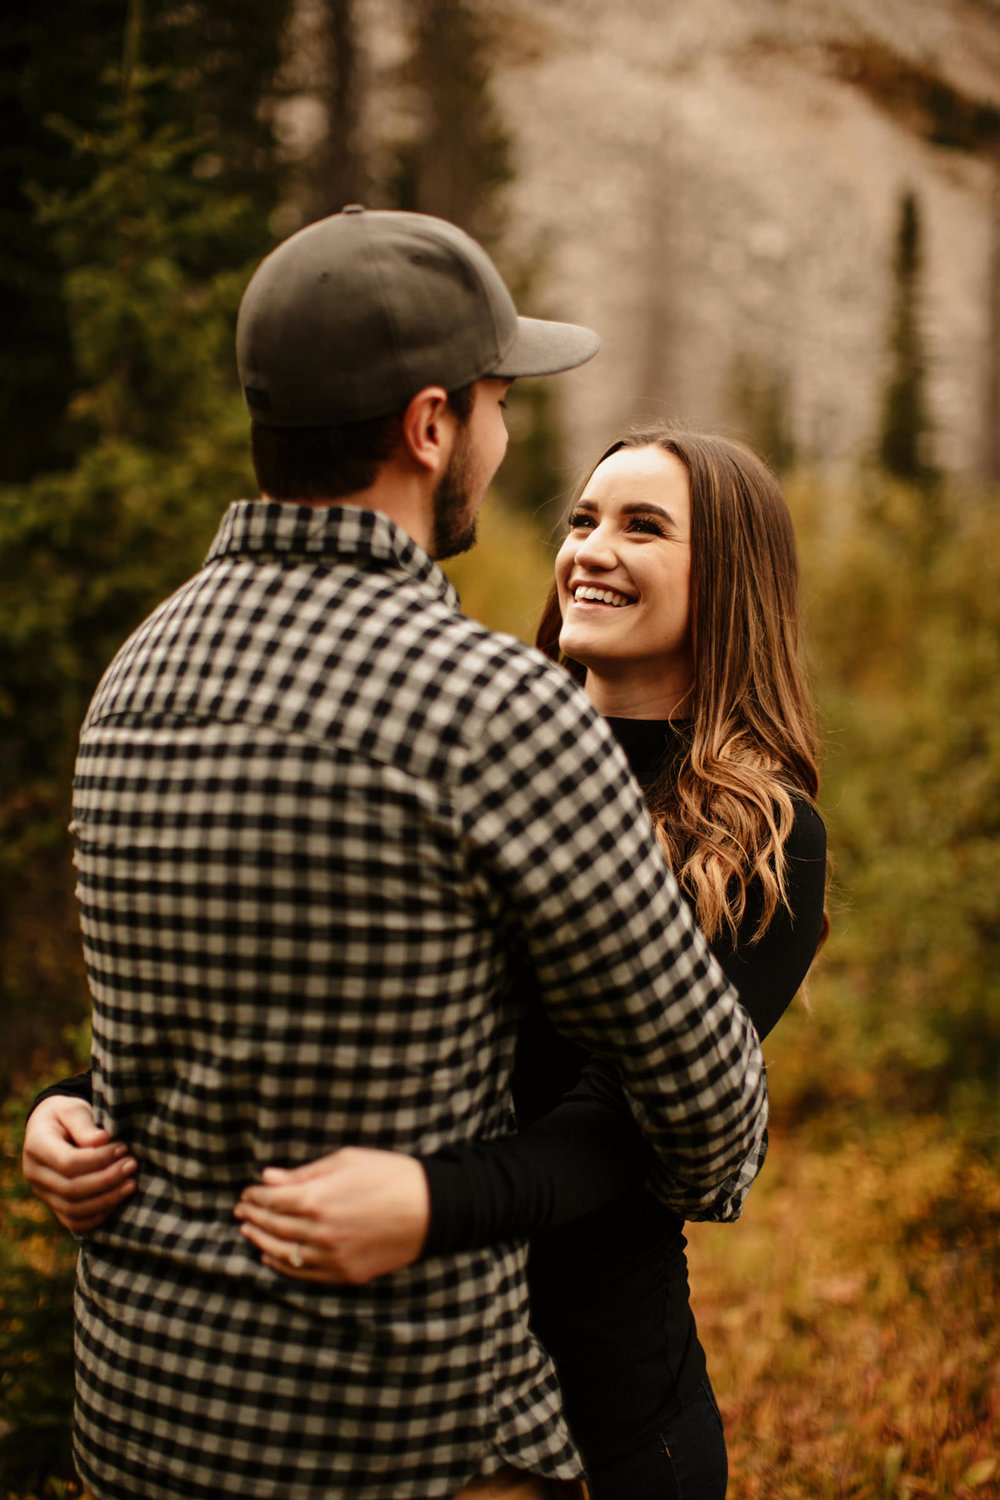 Liz Osban Photography Cheyenne Wyoming Engagement Wedding Photographer couple adventure elopement wedding laramie denver fort collins colorado rocky mountain national park2.jpg